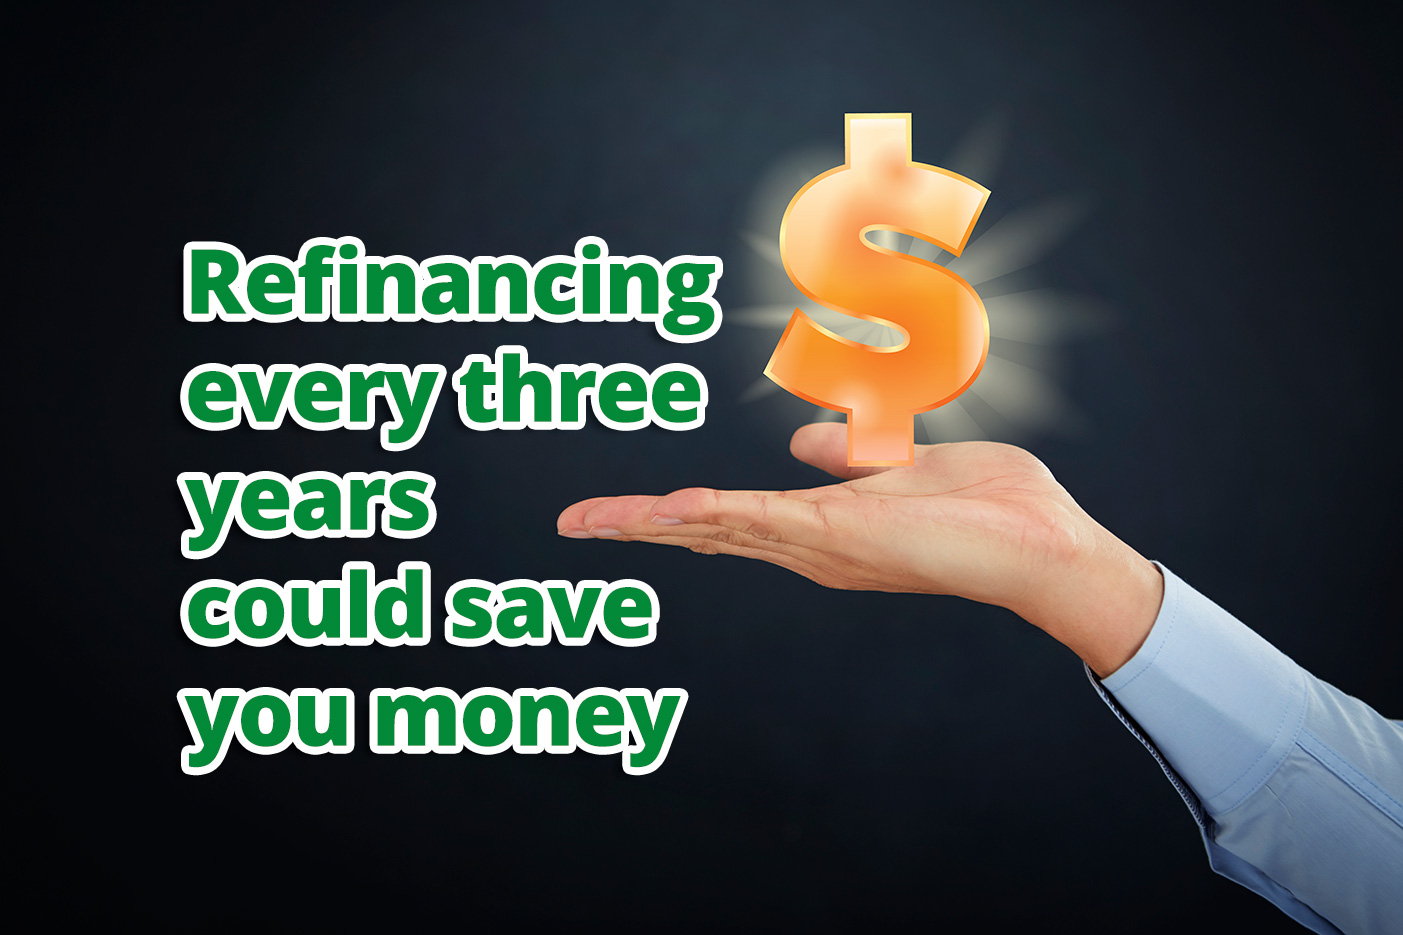 How refinancing every three years could help you save money